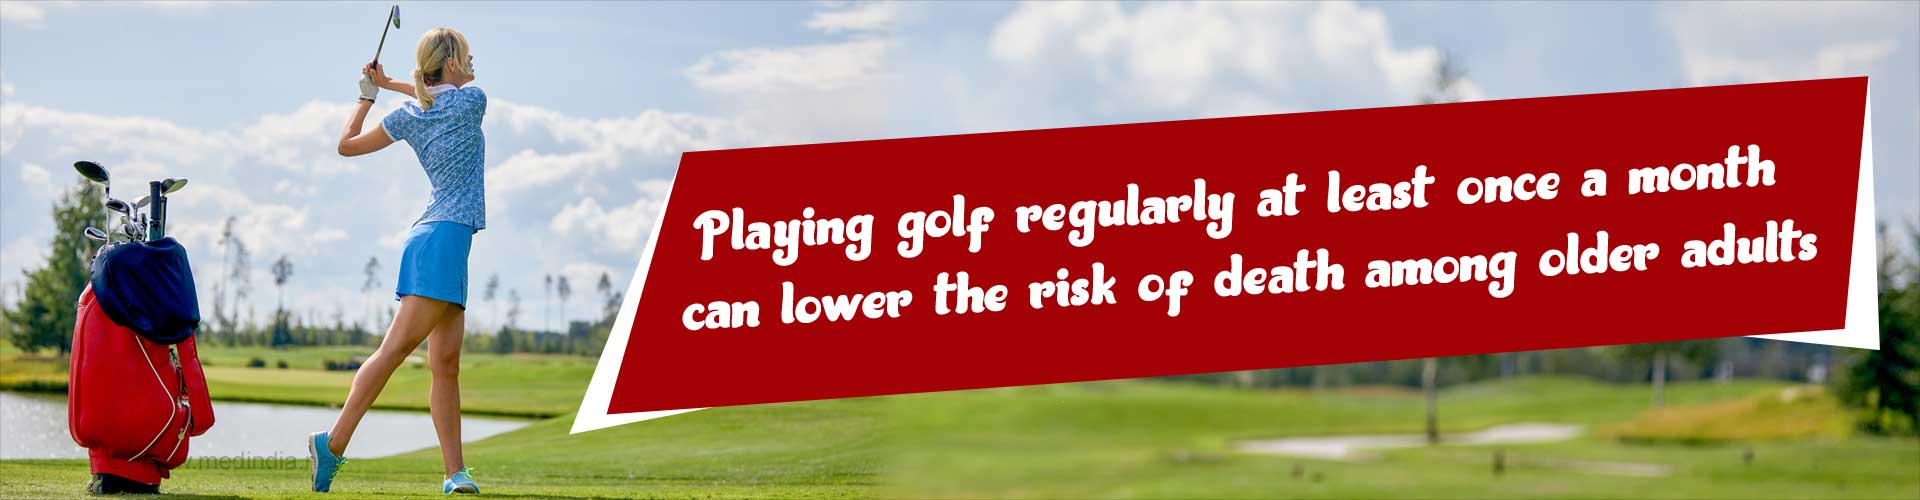 Golf for Elderly: Golfing Regularly can Add Years to Your Life